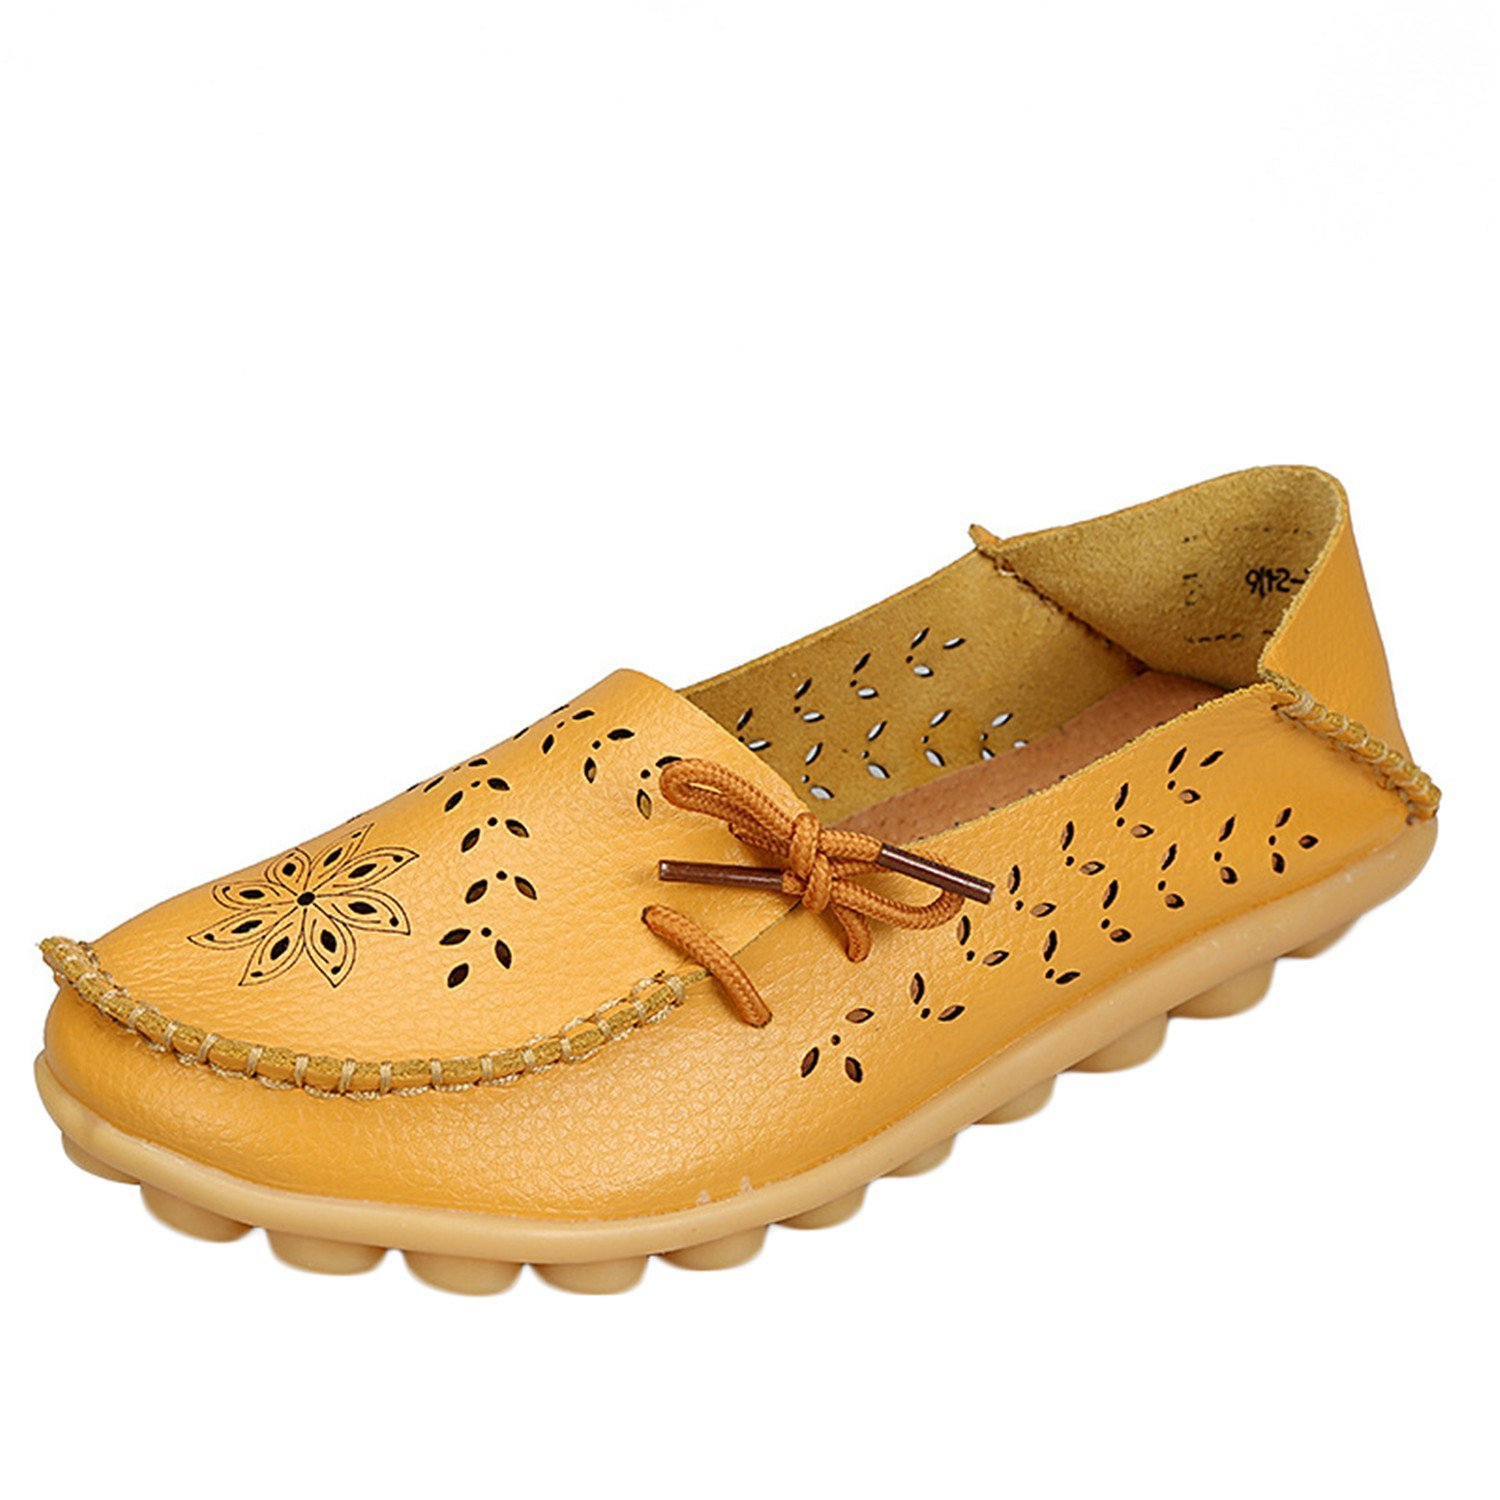 Women's Casual Leather Woman Loafers Slip-On Female Flats Ladies Driving Shoe Cut-Outs Mother Footwear Yellow 13